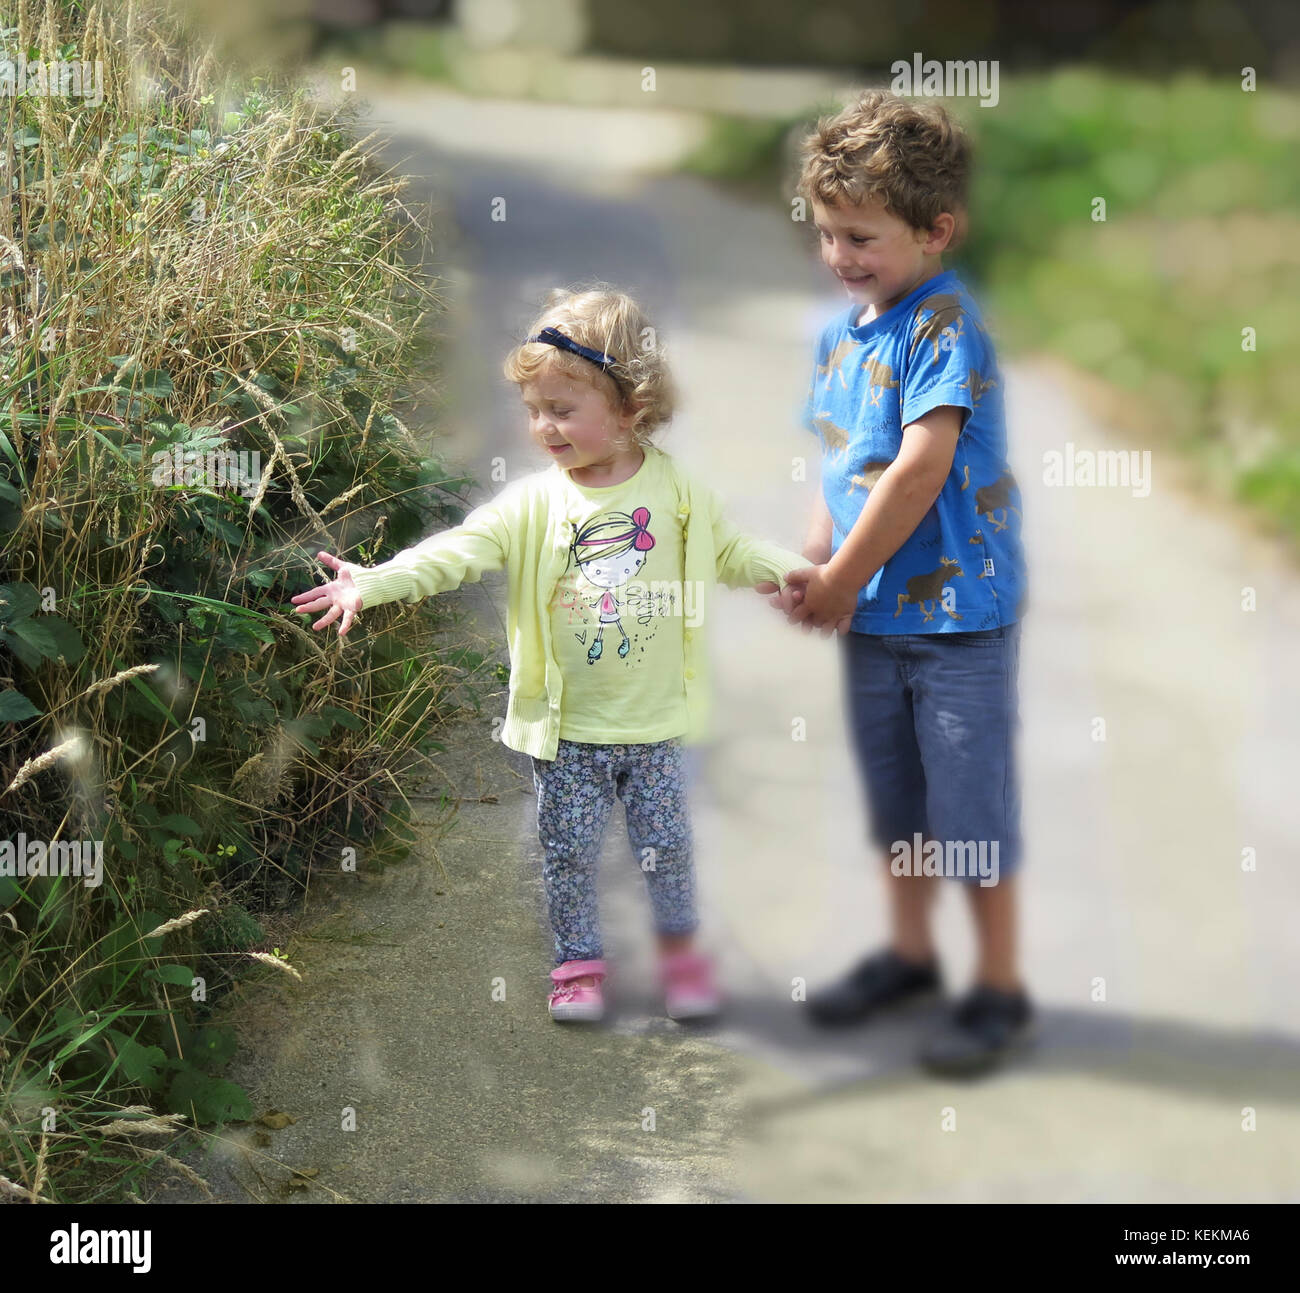 Young boy and girl holding hands out walking in the park - Stock Image